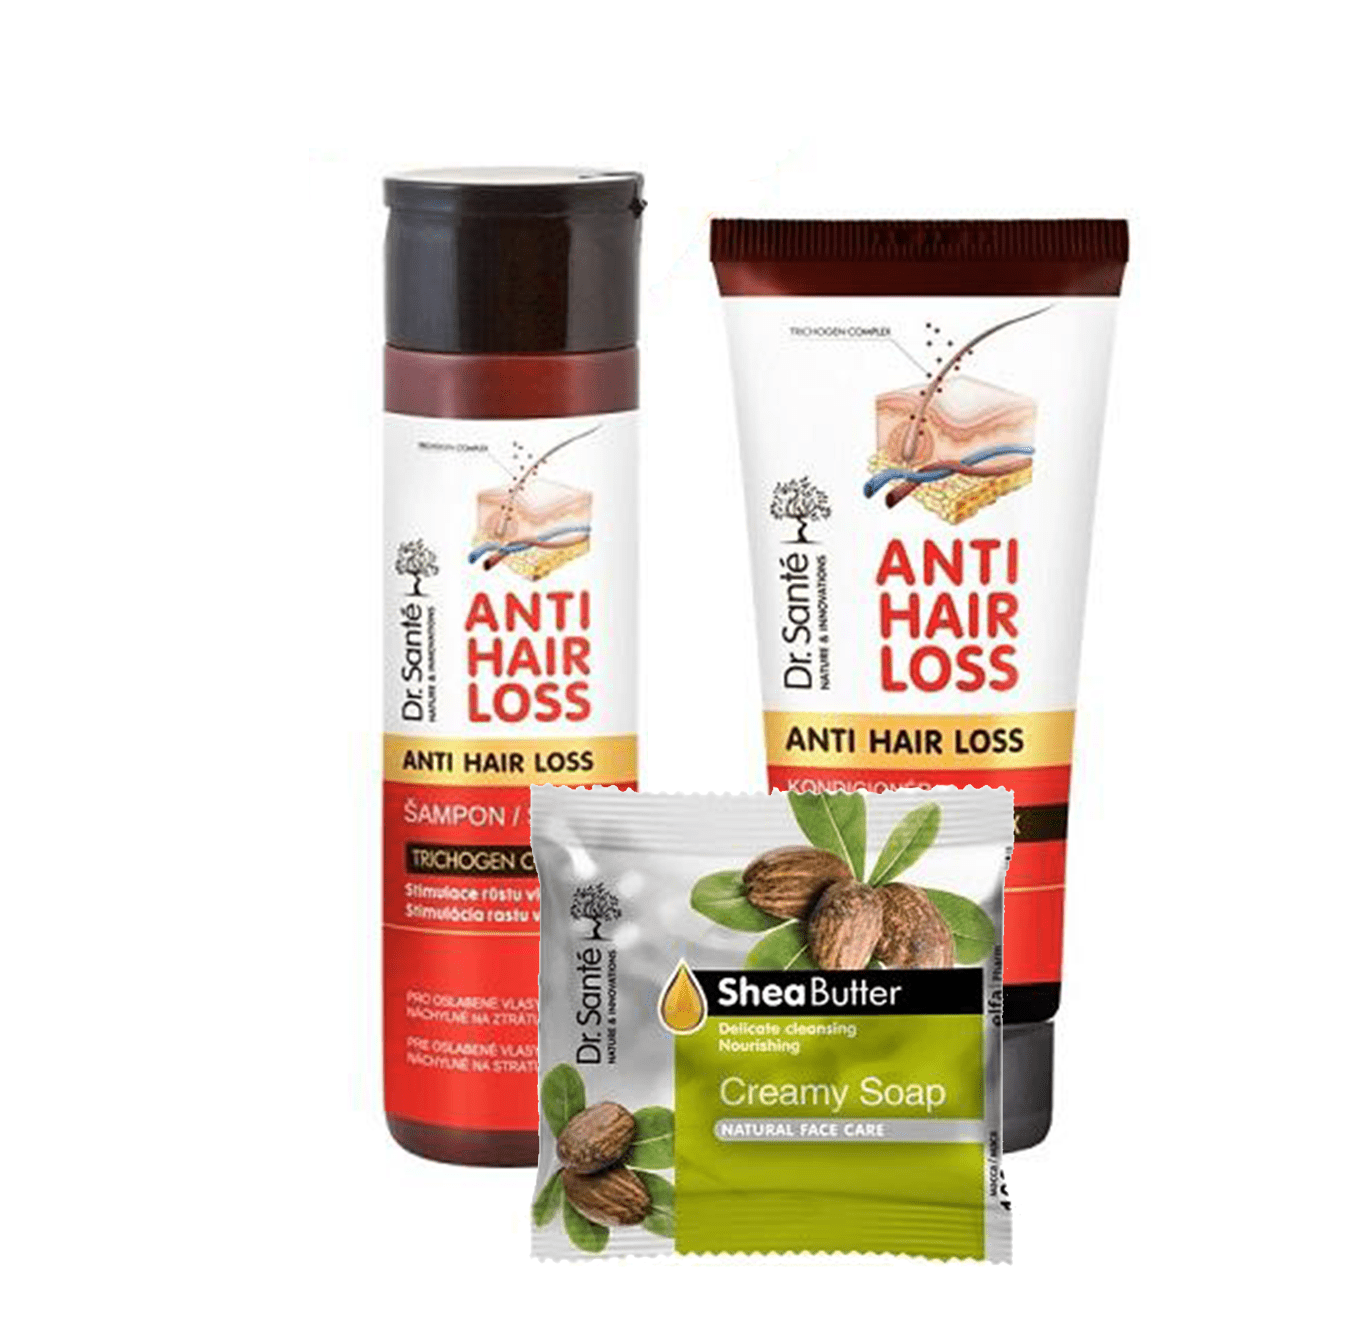 AKCIA: Dr. Santé Gift Pack 2+1 Anti Hair Loss - šampón, 250 ml + kondicionér, 200 ml + mydlo, 100 g